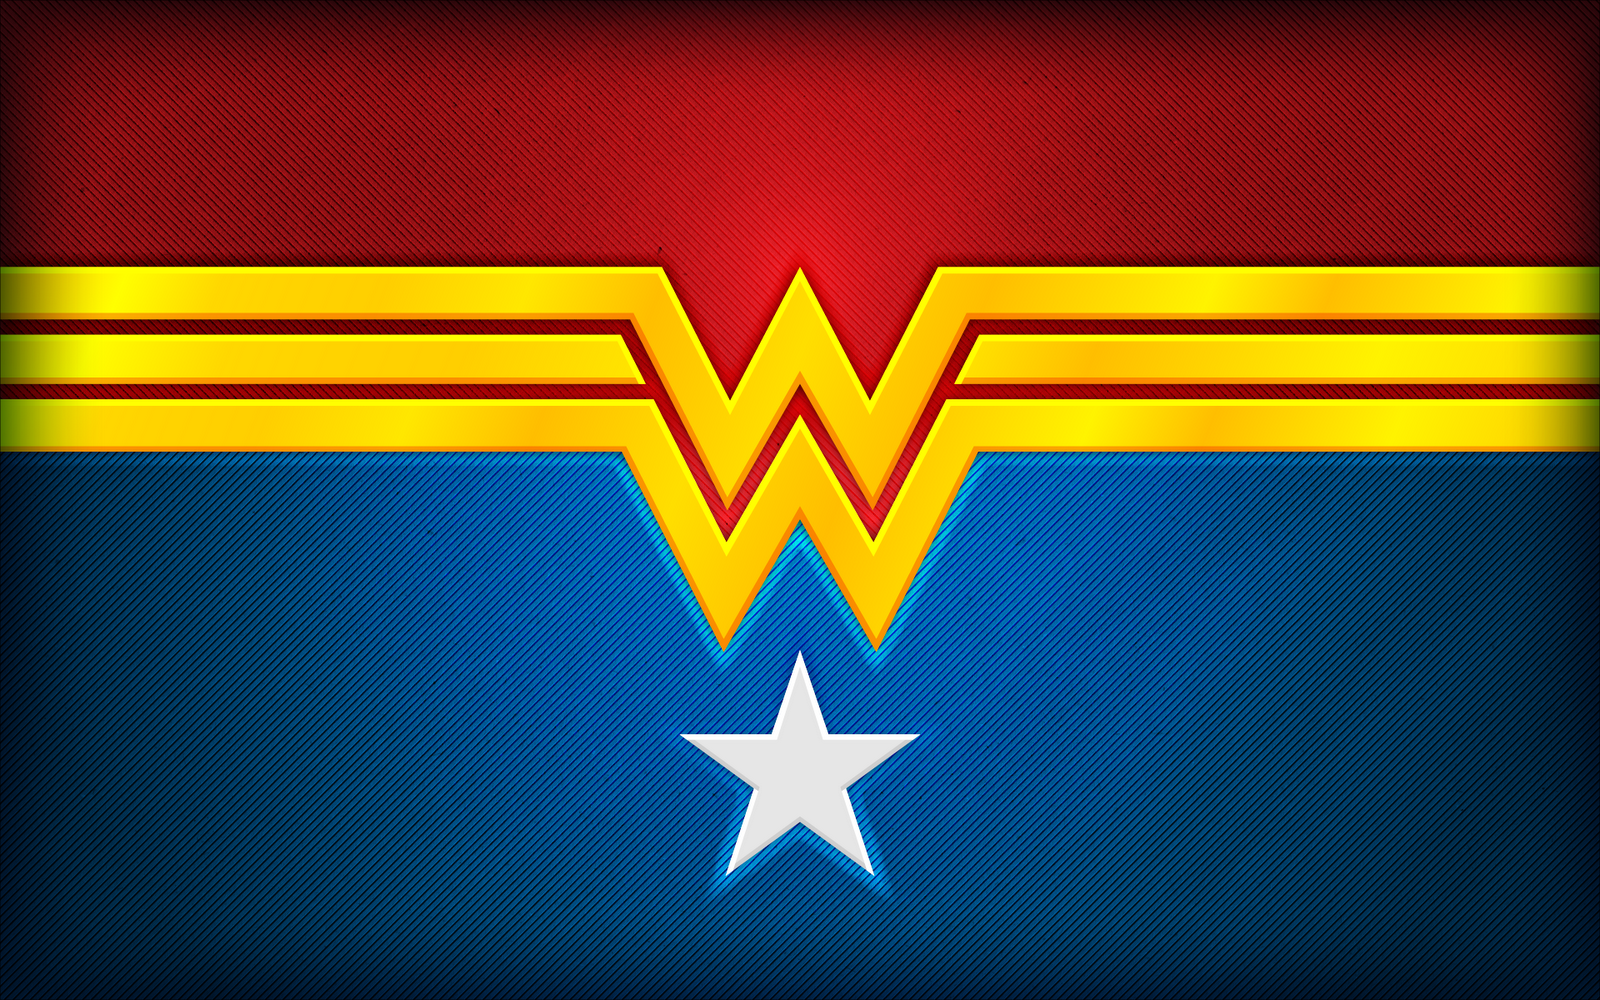 Wonder Woman Logo Wallpaper 61 Images: Find Best Wallpapers: Team MadLeeTs Wallpapers HD